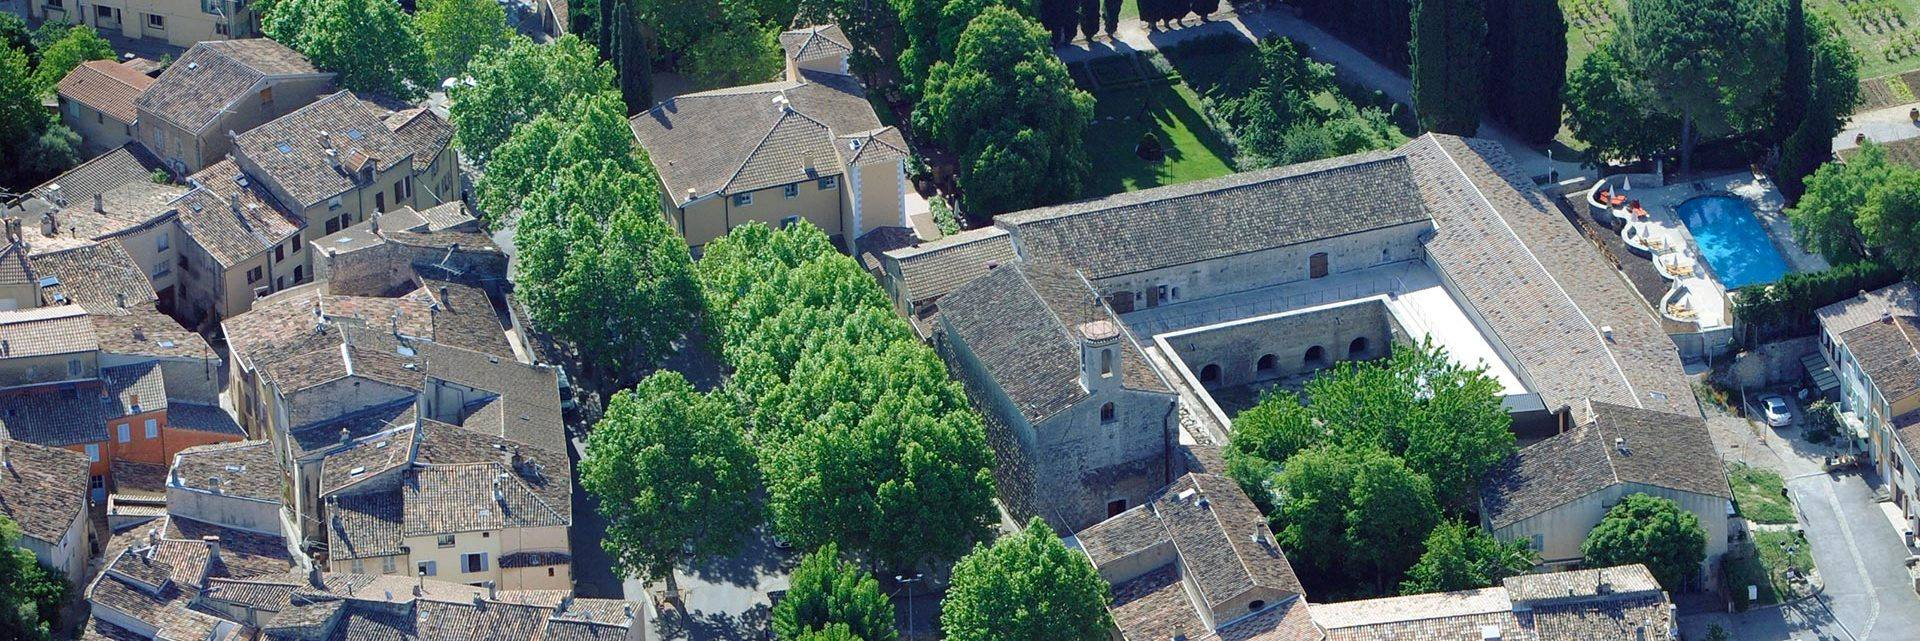 La Celle Abbey seen from above